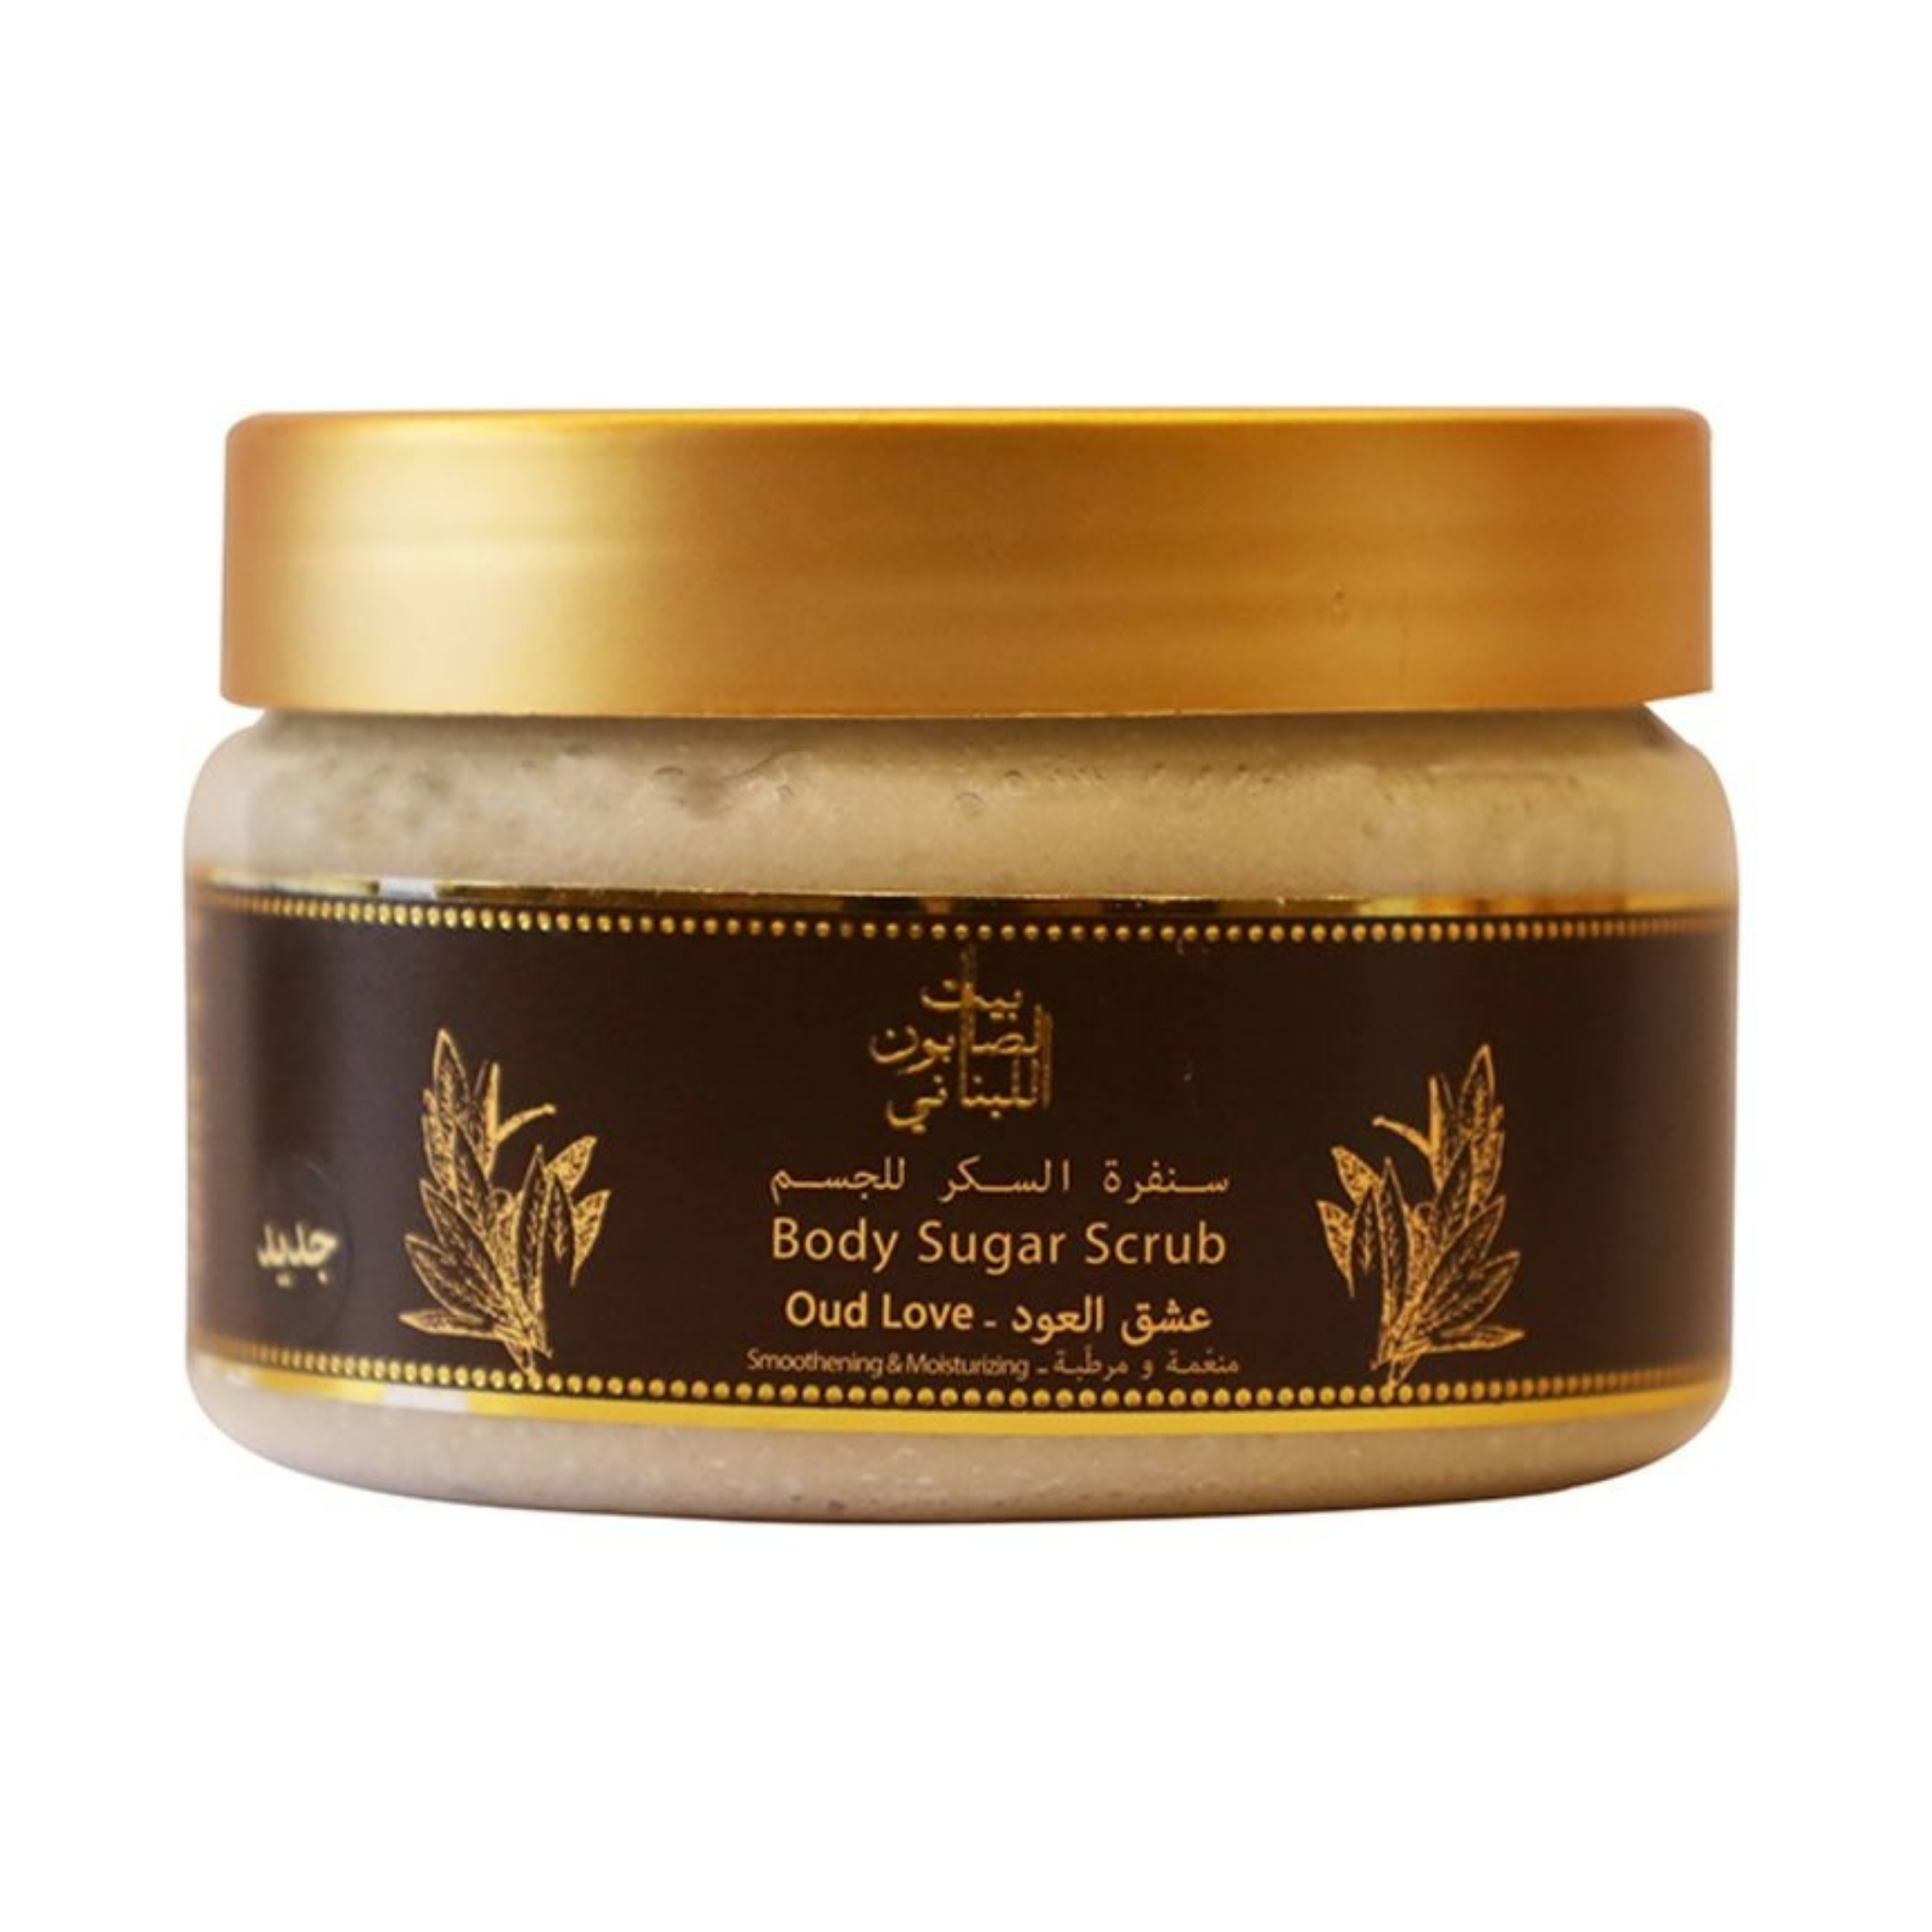 OUD LOVE BODY SUGAR SCRUB